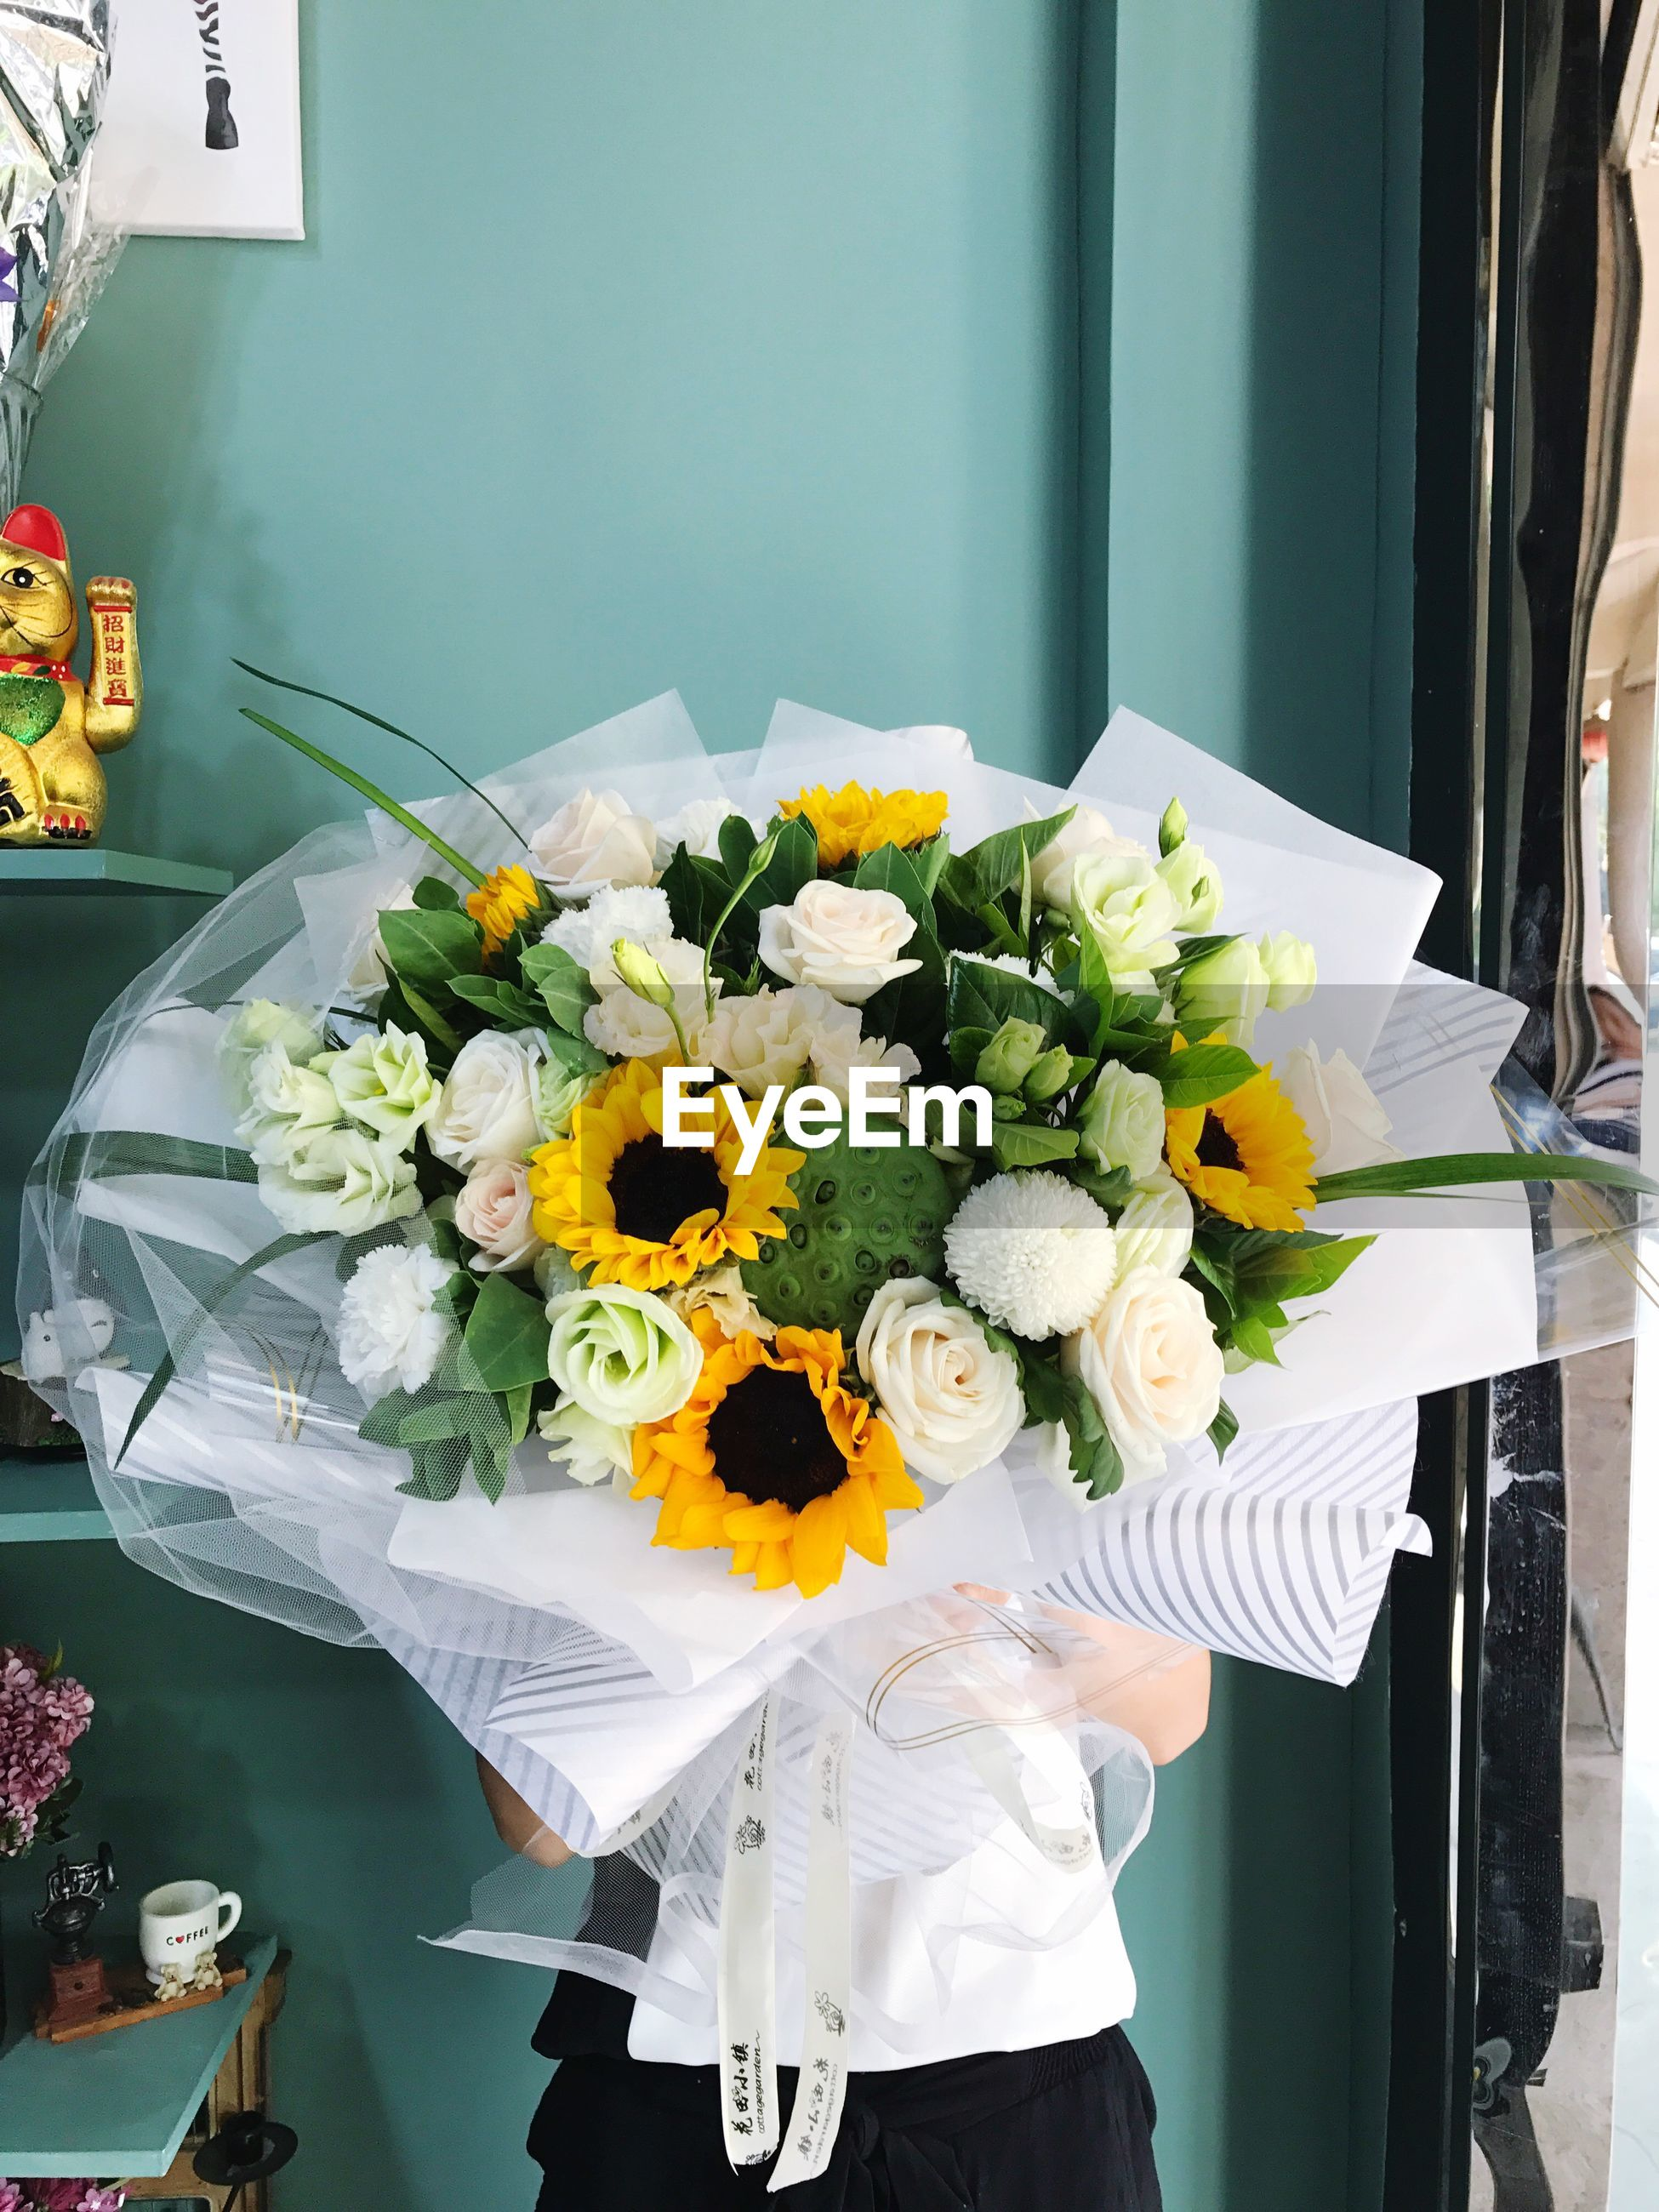 flower, bouquet, freshness, flower arrangement, one person, fragility, vase, yellow, indoors, real people, flower shop, flower head, day, women, human hand, close-up